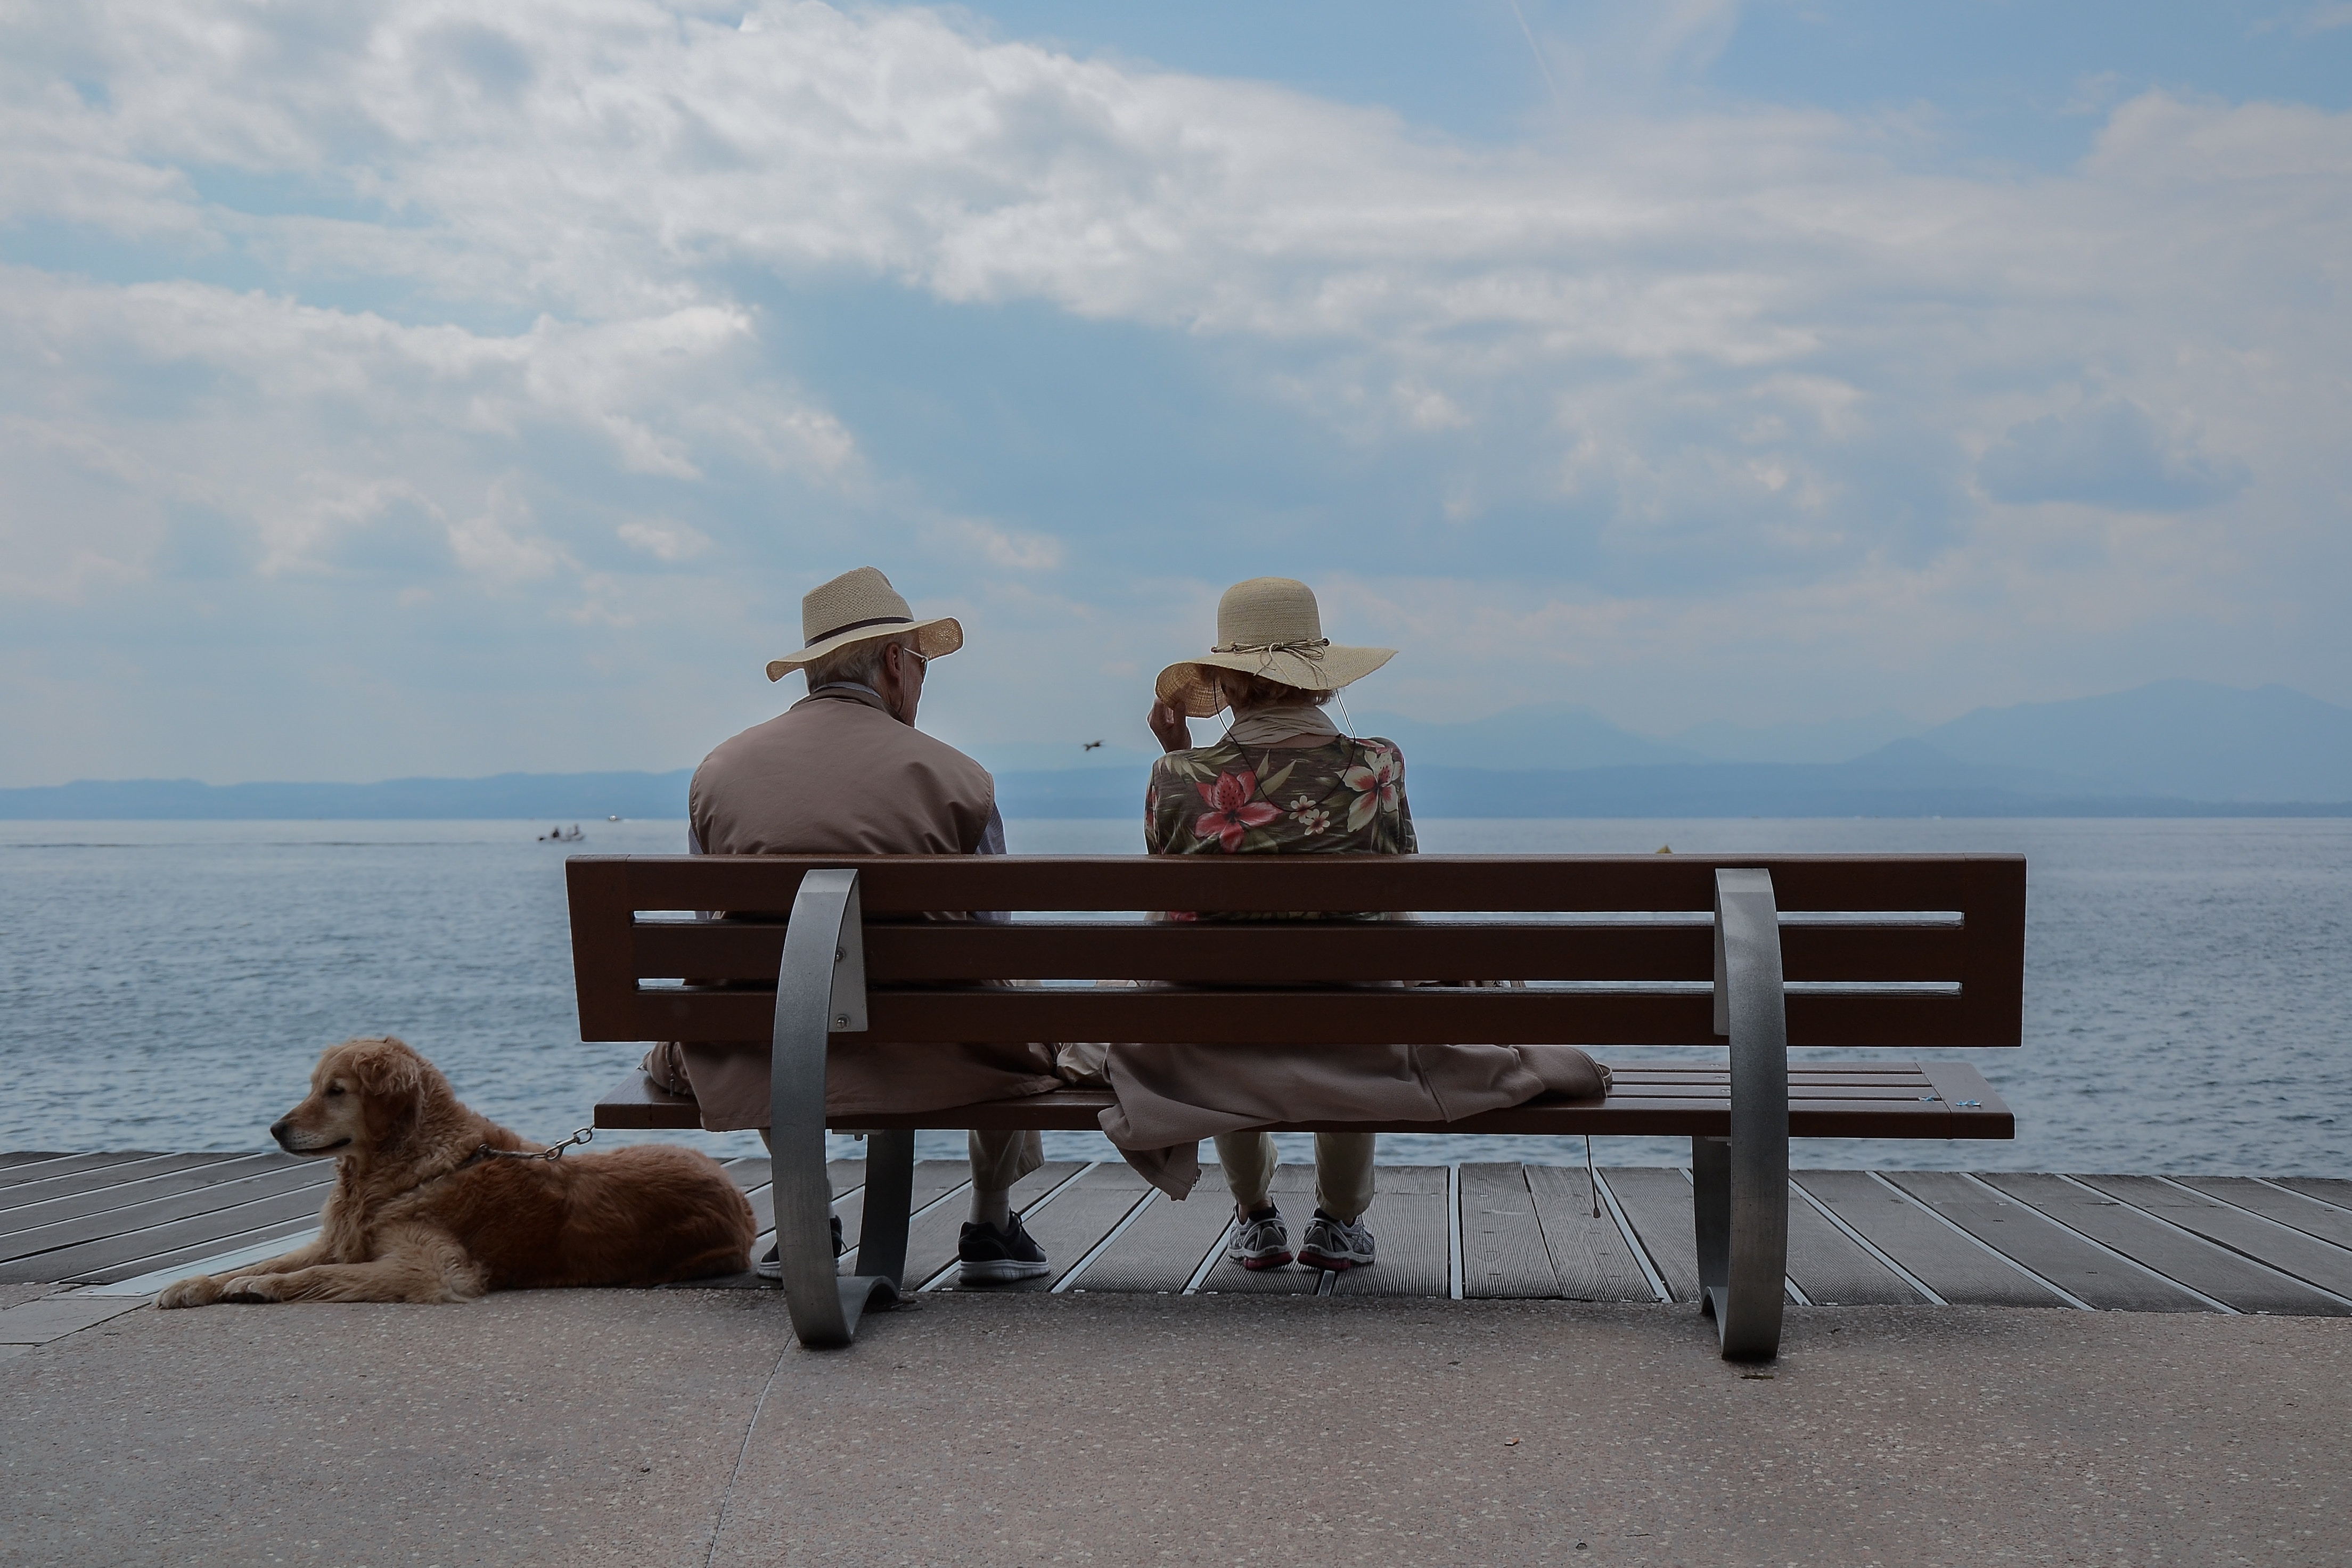 couple sitting on bench in front of lake discussing news